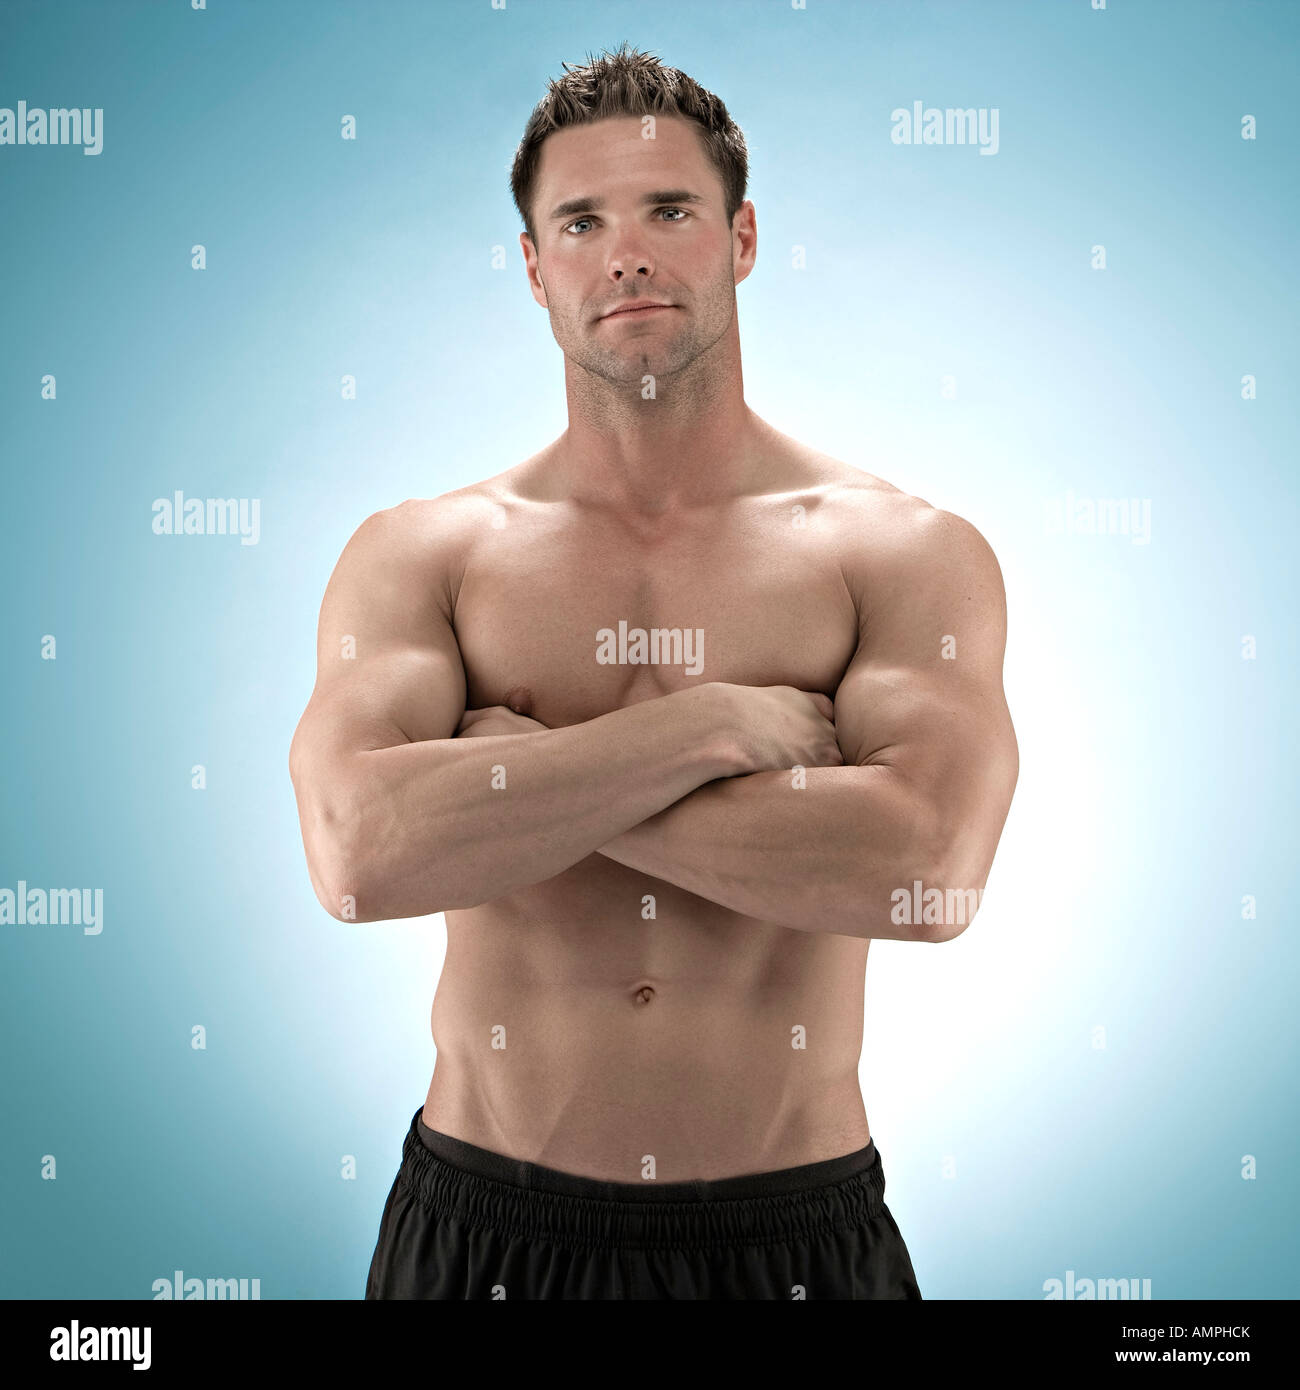 Beauty photo of muscular 20-30 year old man with shirt off. - Stock Image